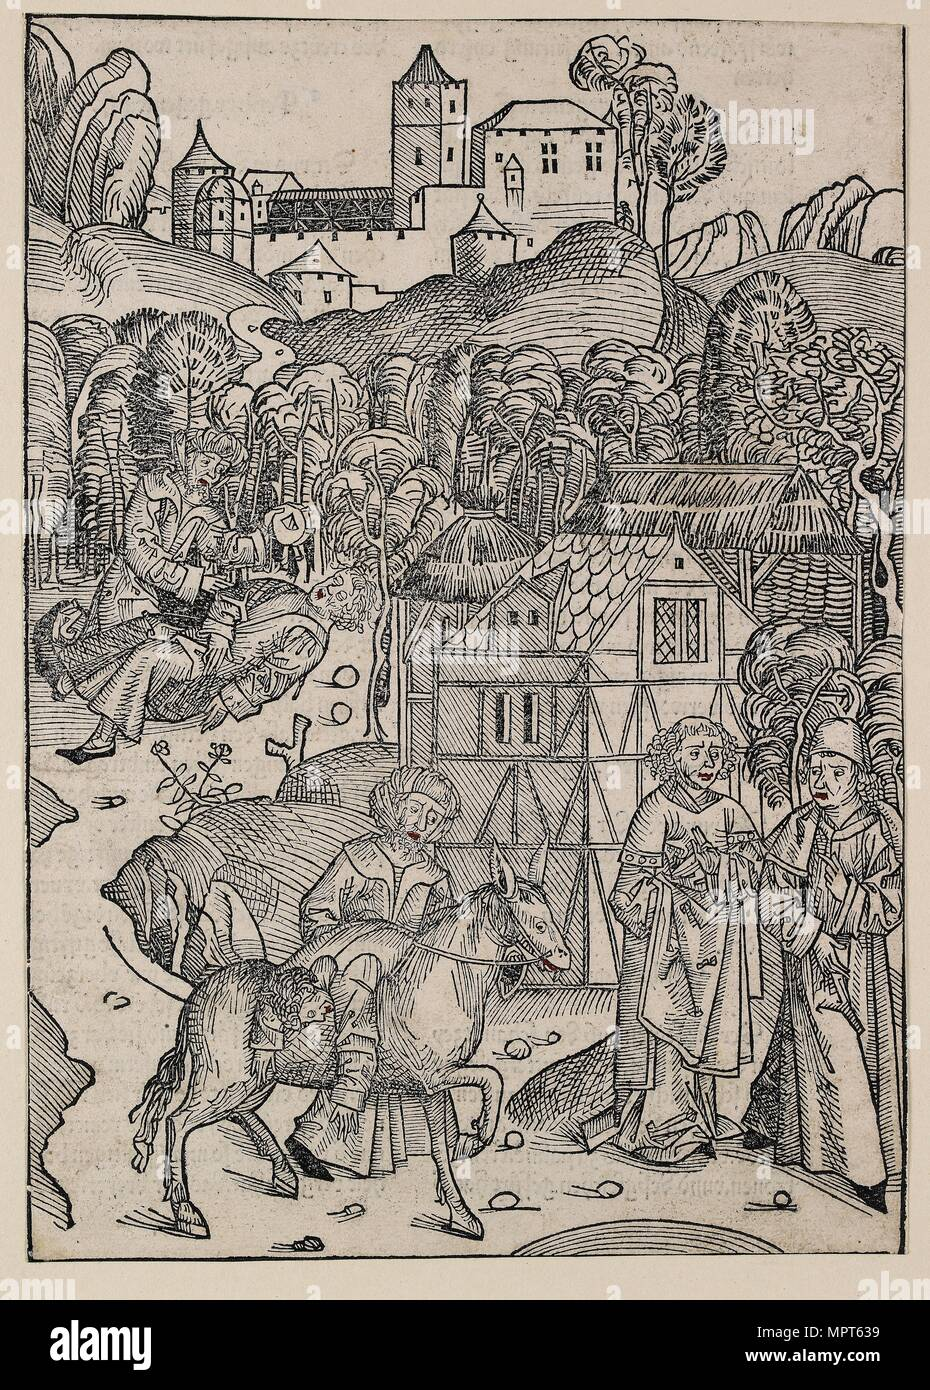 The second part of the parable of the good Samaritan, c1491. Artist: Michael Wolgemut. - Stock Image